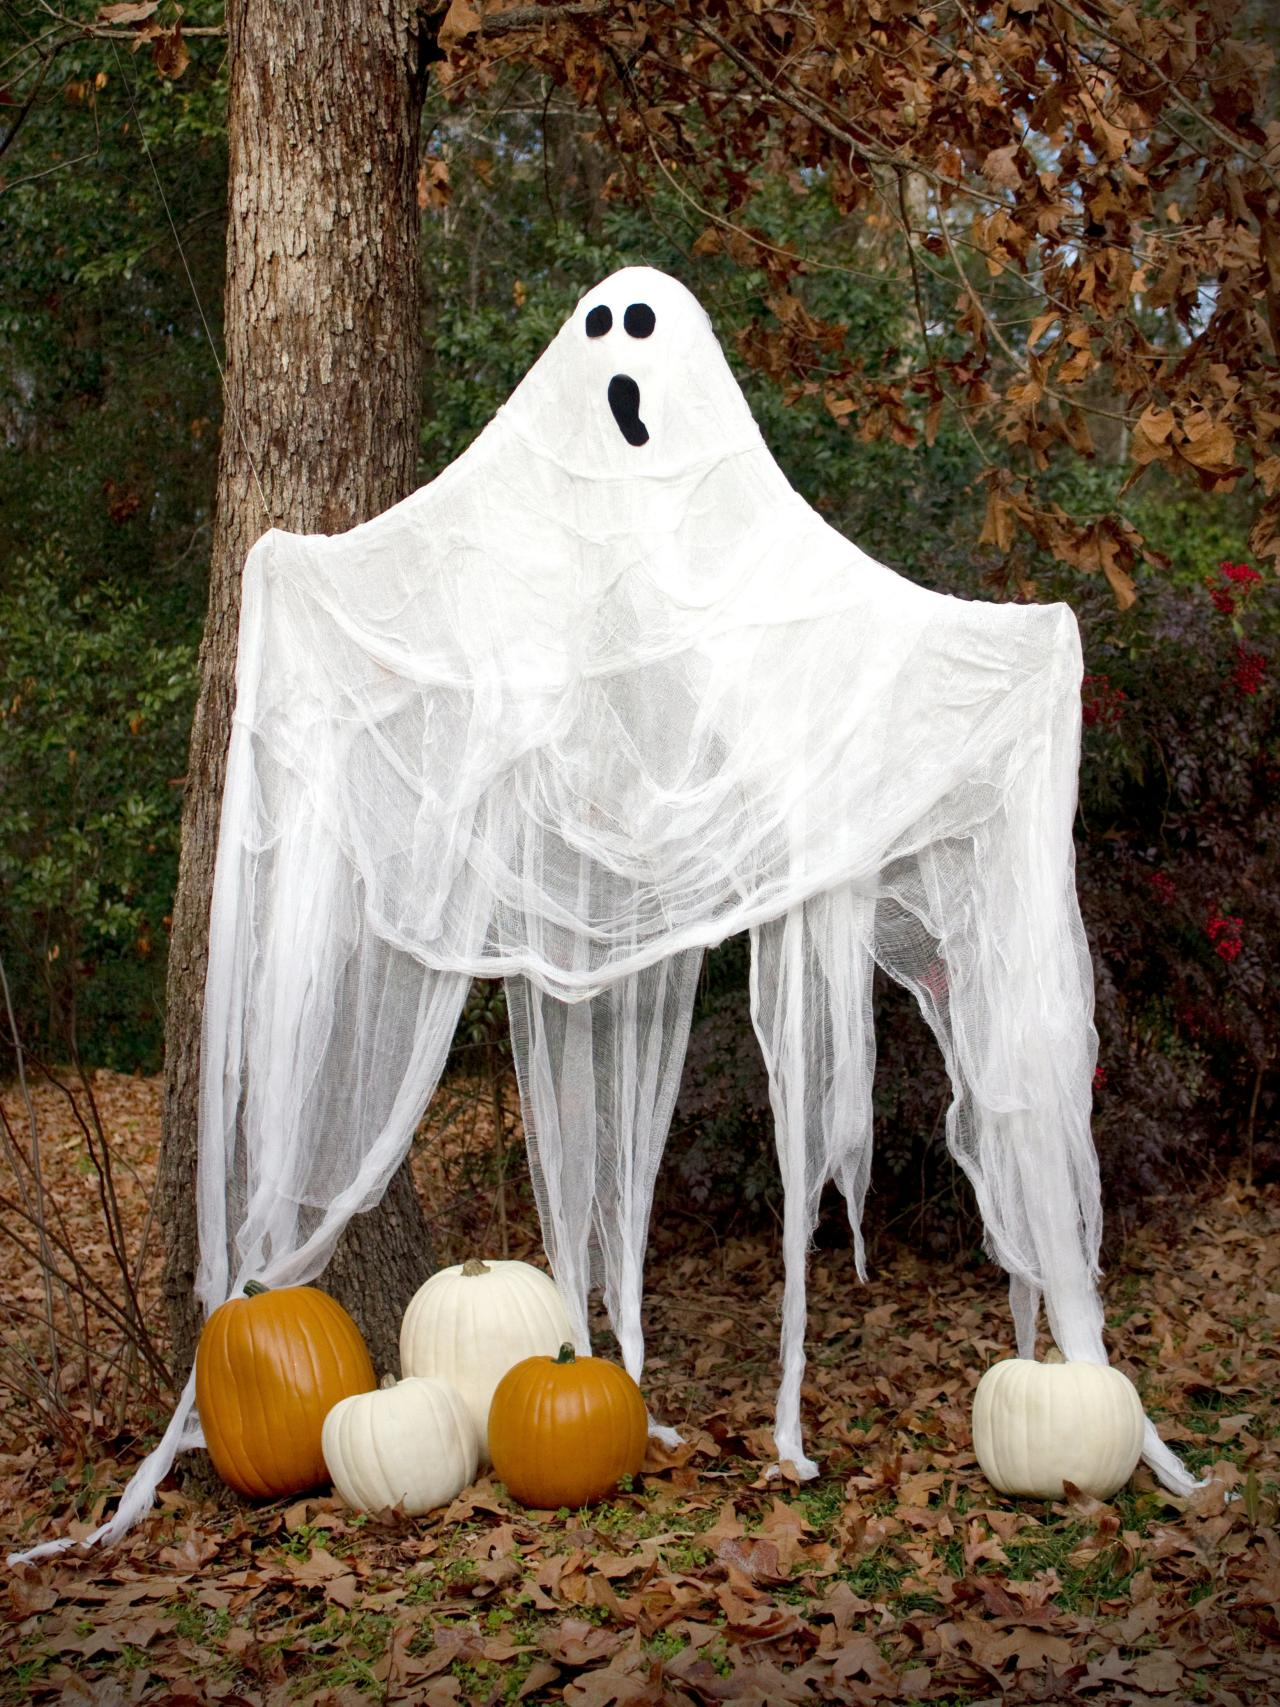 or a levitating ghost - Holloween Decorations